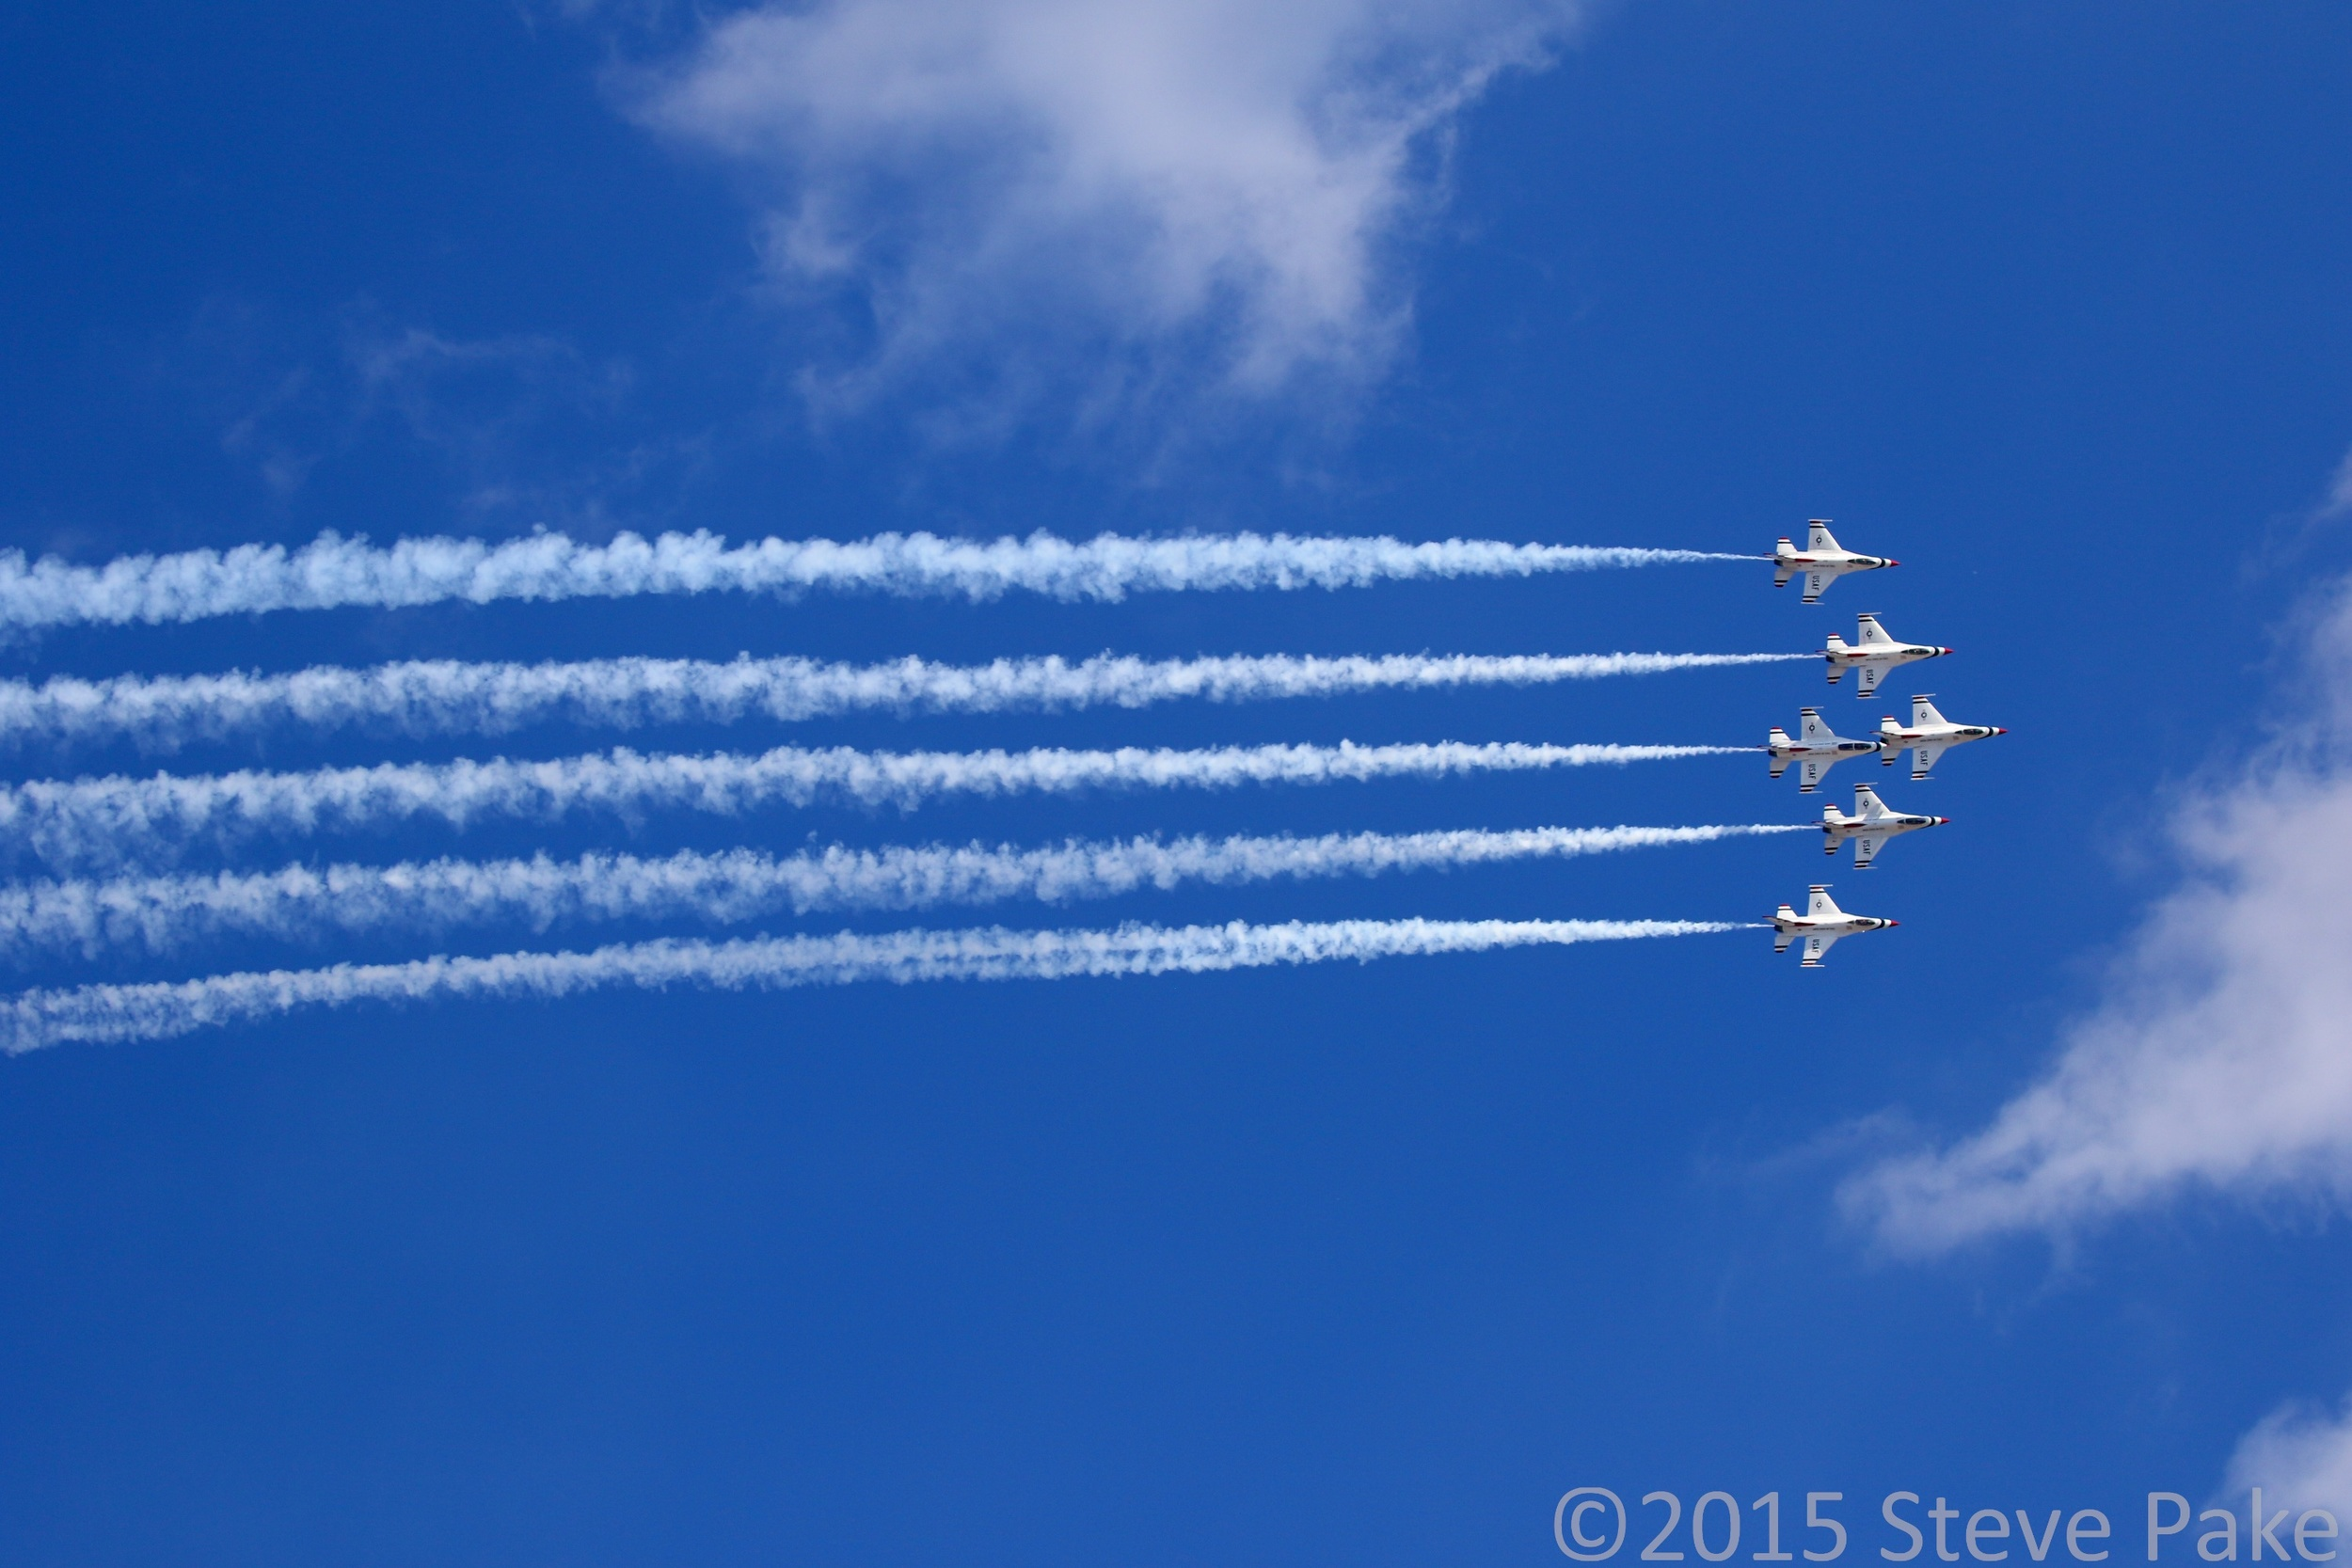 Joint Base Andrews Air Show 2015, Thunderbirds Aerial Demonstration,Canon 7D Mark II and 100-400mm lens